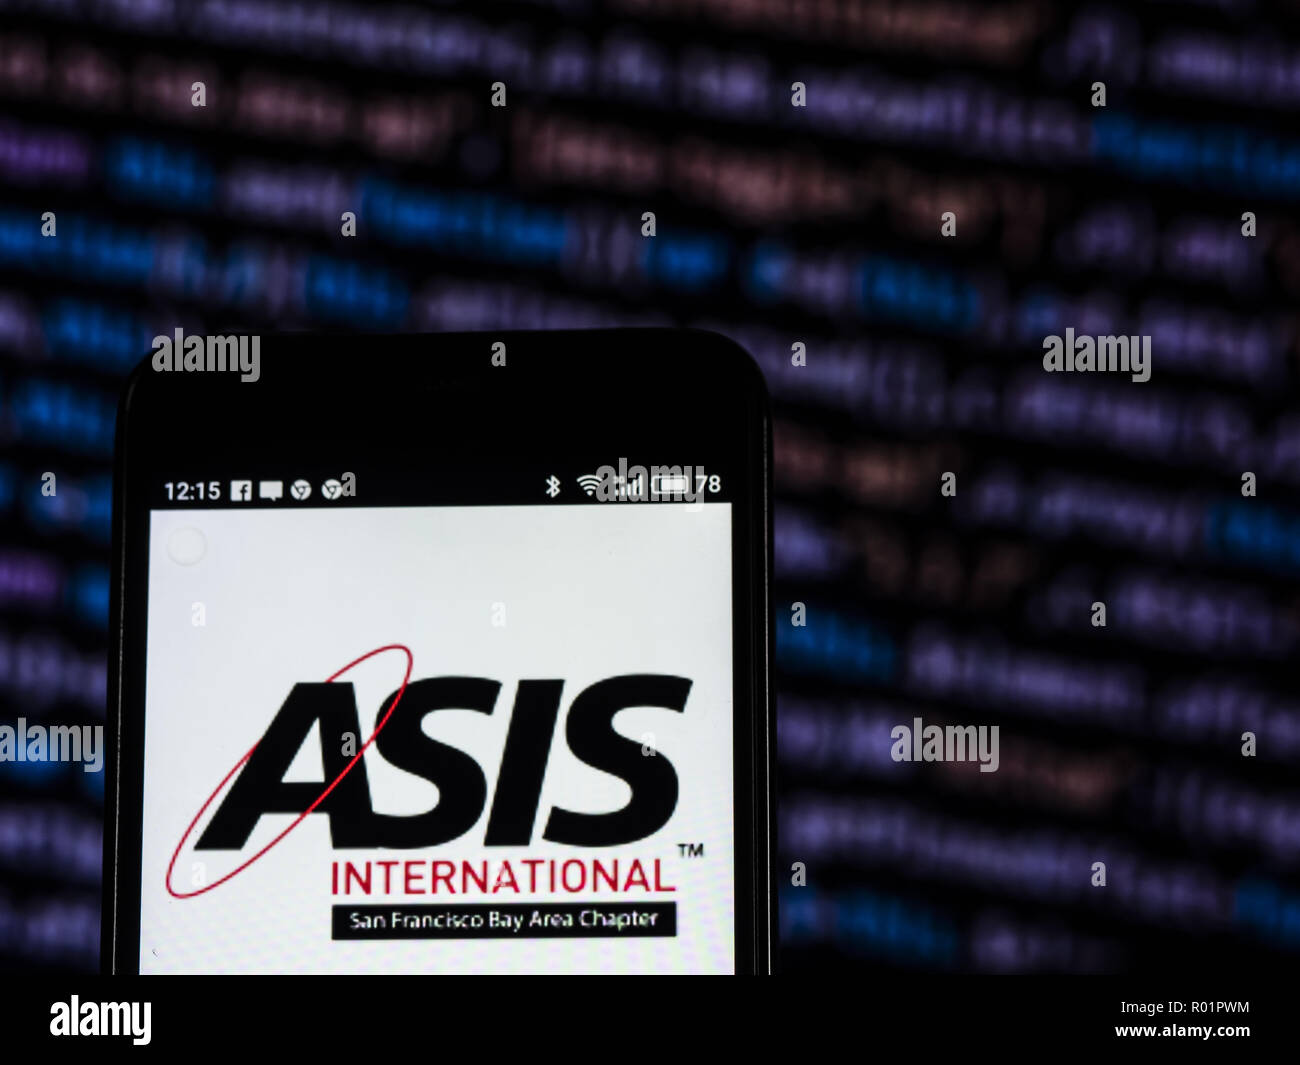 Kiev, Ukraine. 31st Oct, 2018. ASIS International Professional organizations company logo seen displayed on smart phone. ASIS International is a professional organization for security professionals. It issues various certifications, standards, and guidelines for the security profession. Credit: Igor Golovniov/SOPA Images/ZUMA Wire/Alamy Live News - Stock Image